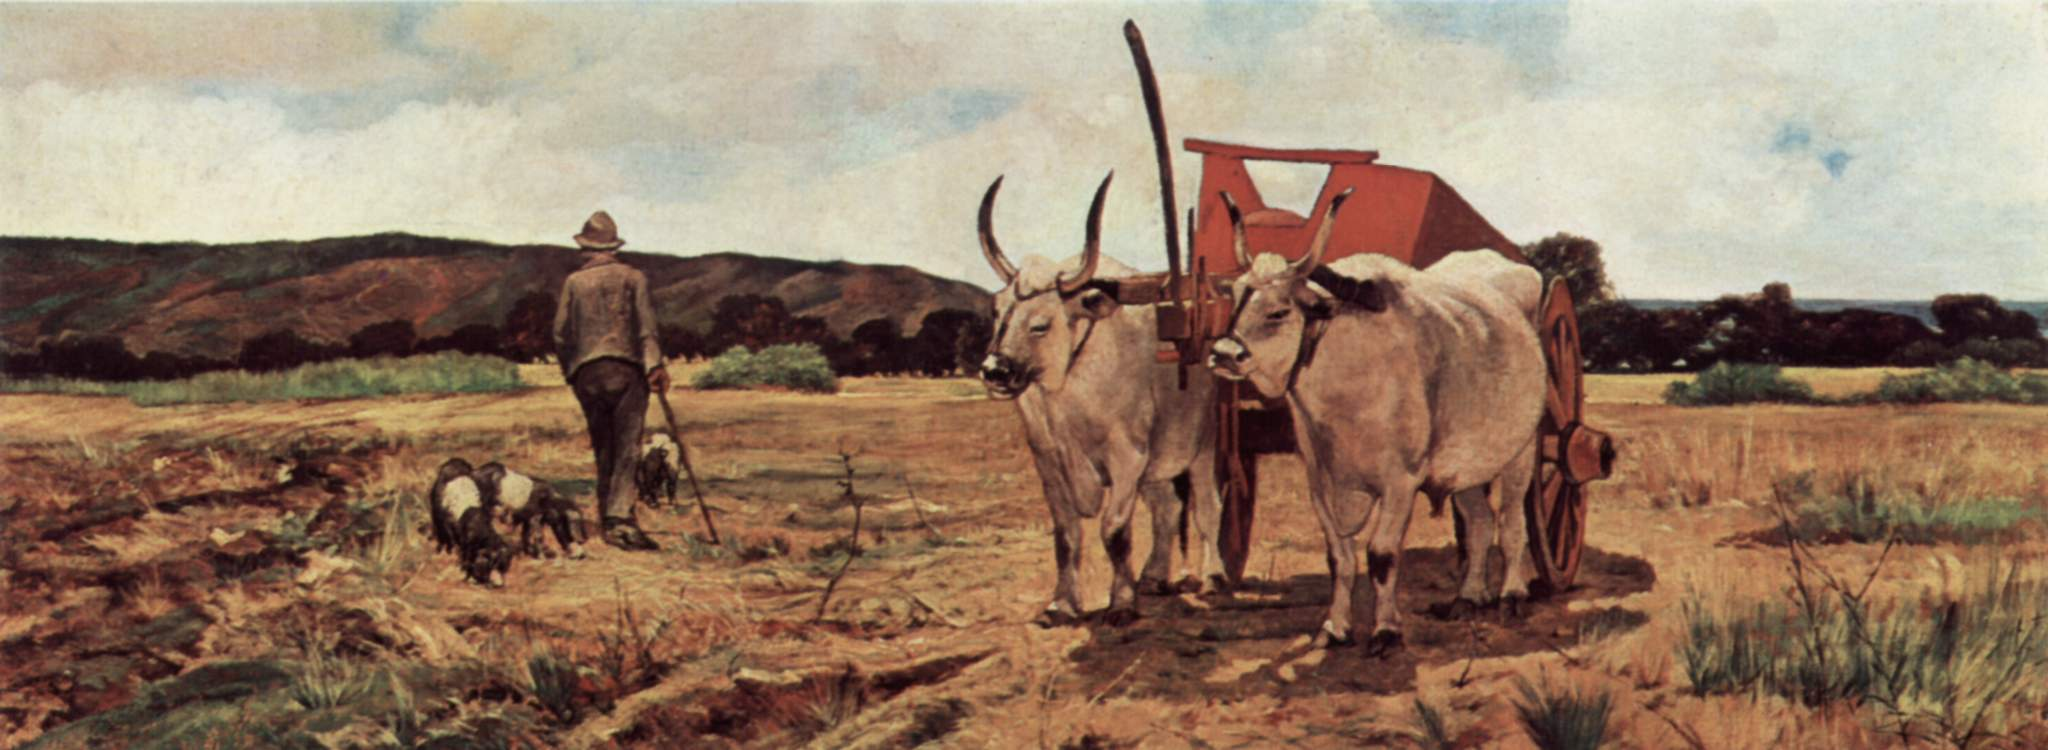 Giovanni Fattori   Landscape with farmer and oxen cart,  1894 Pitti Palace, Modern Art Gallery, Florence, Italy